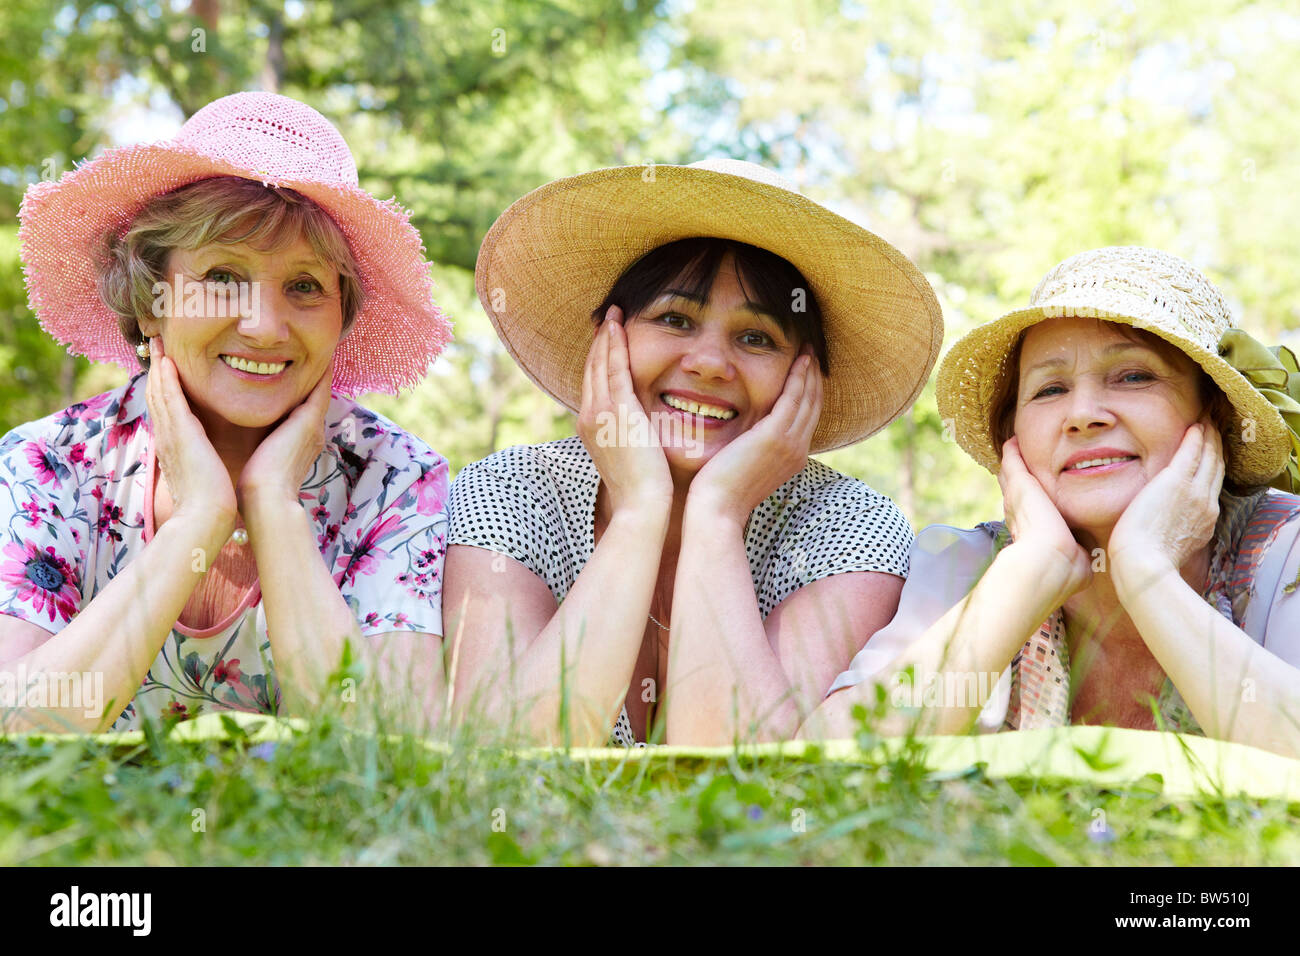 Portrait of three aged women in elegant hats resting on grass - Stock Image